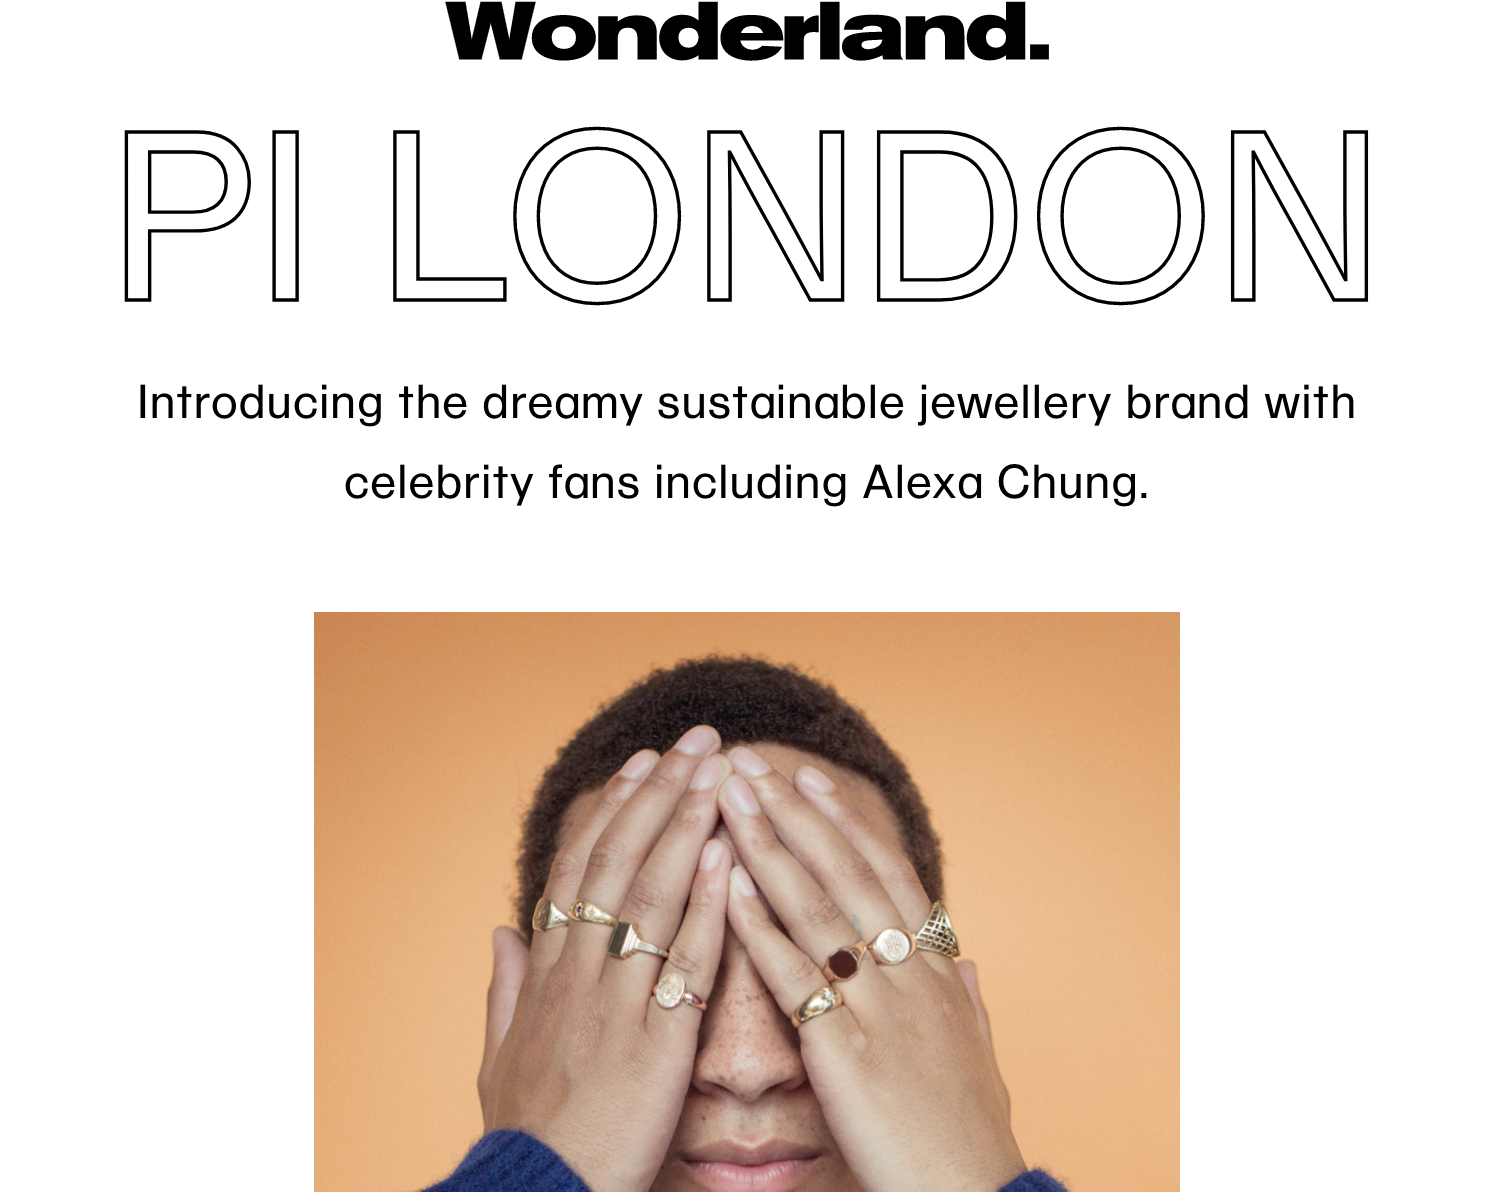 Wonderland - 11th May 2020 pi london feature